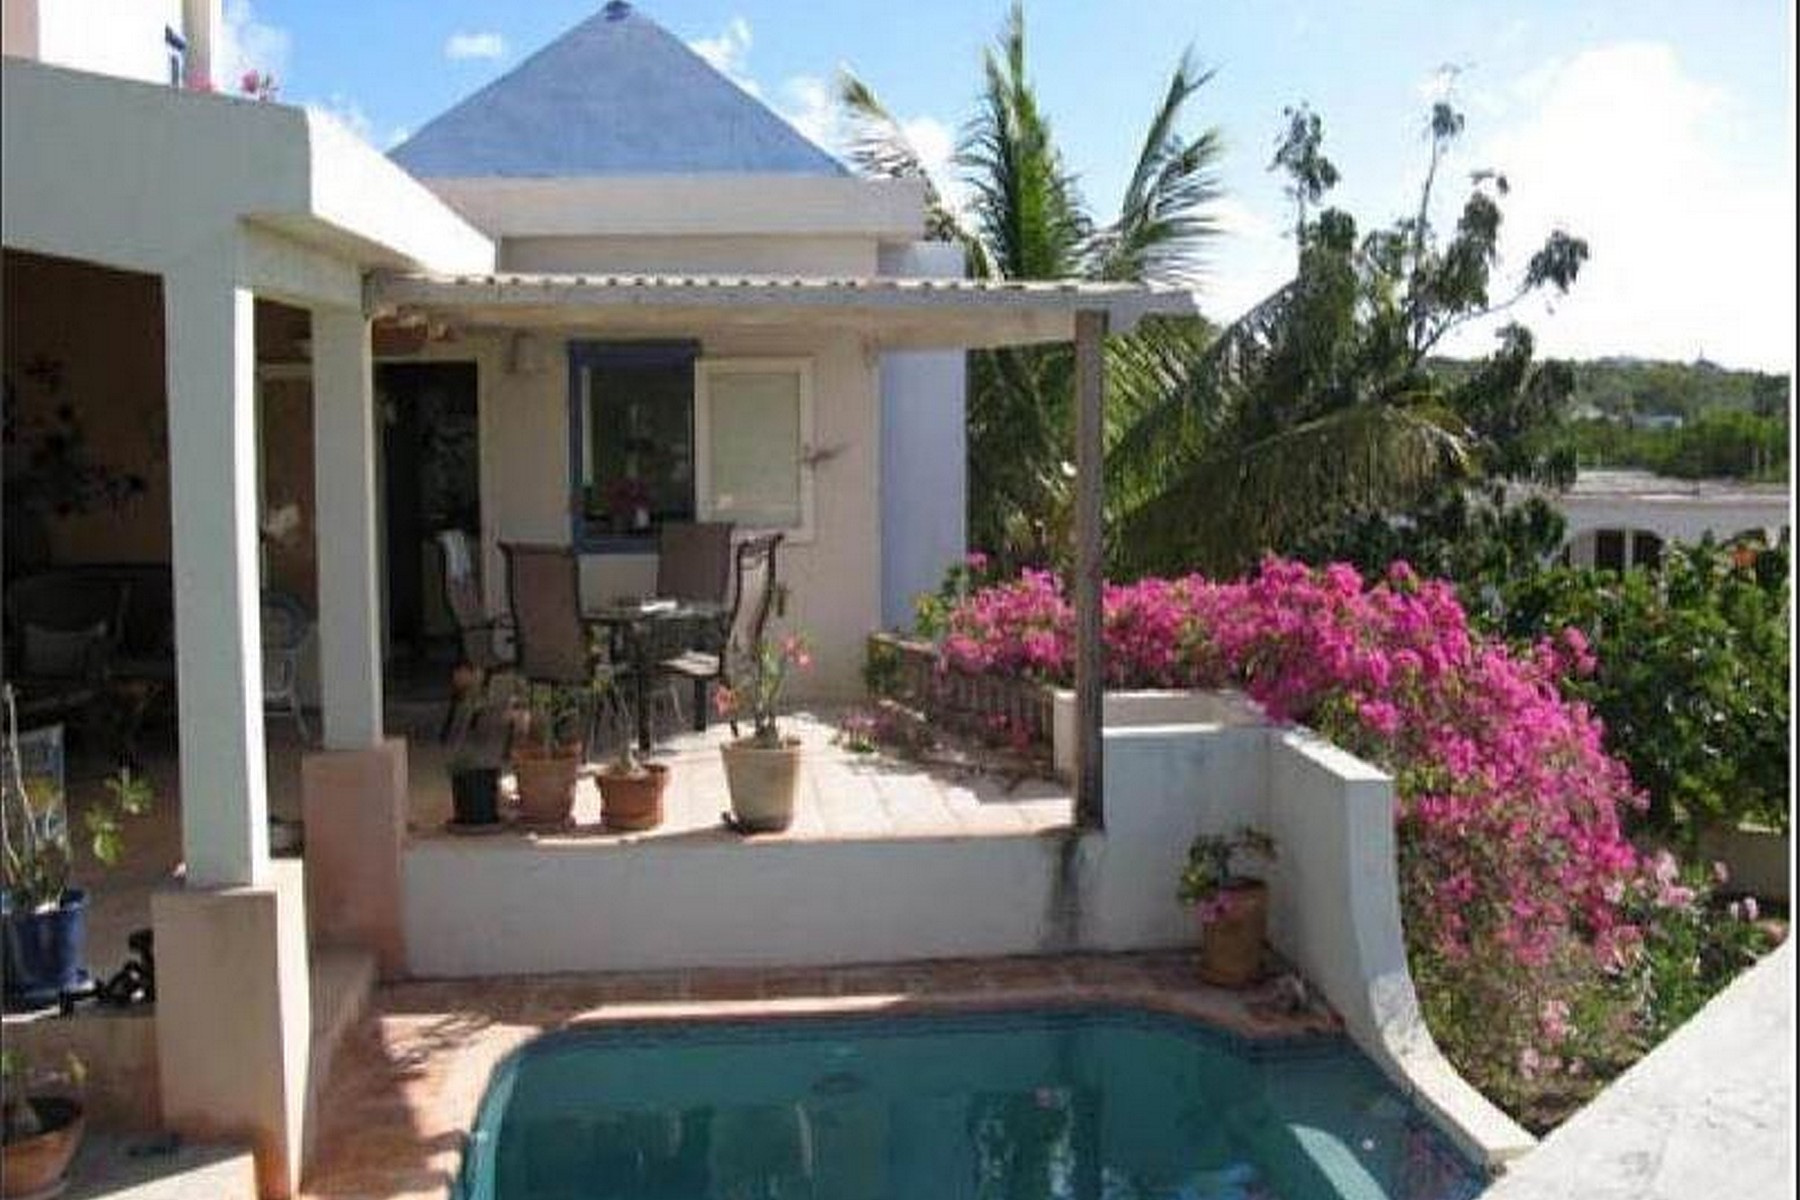 Casa Unifamiliar por un Venta en Reef's Totality West End Other Anguilla, AI 2640 Anguila